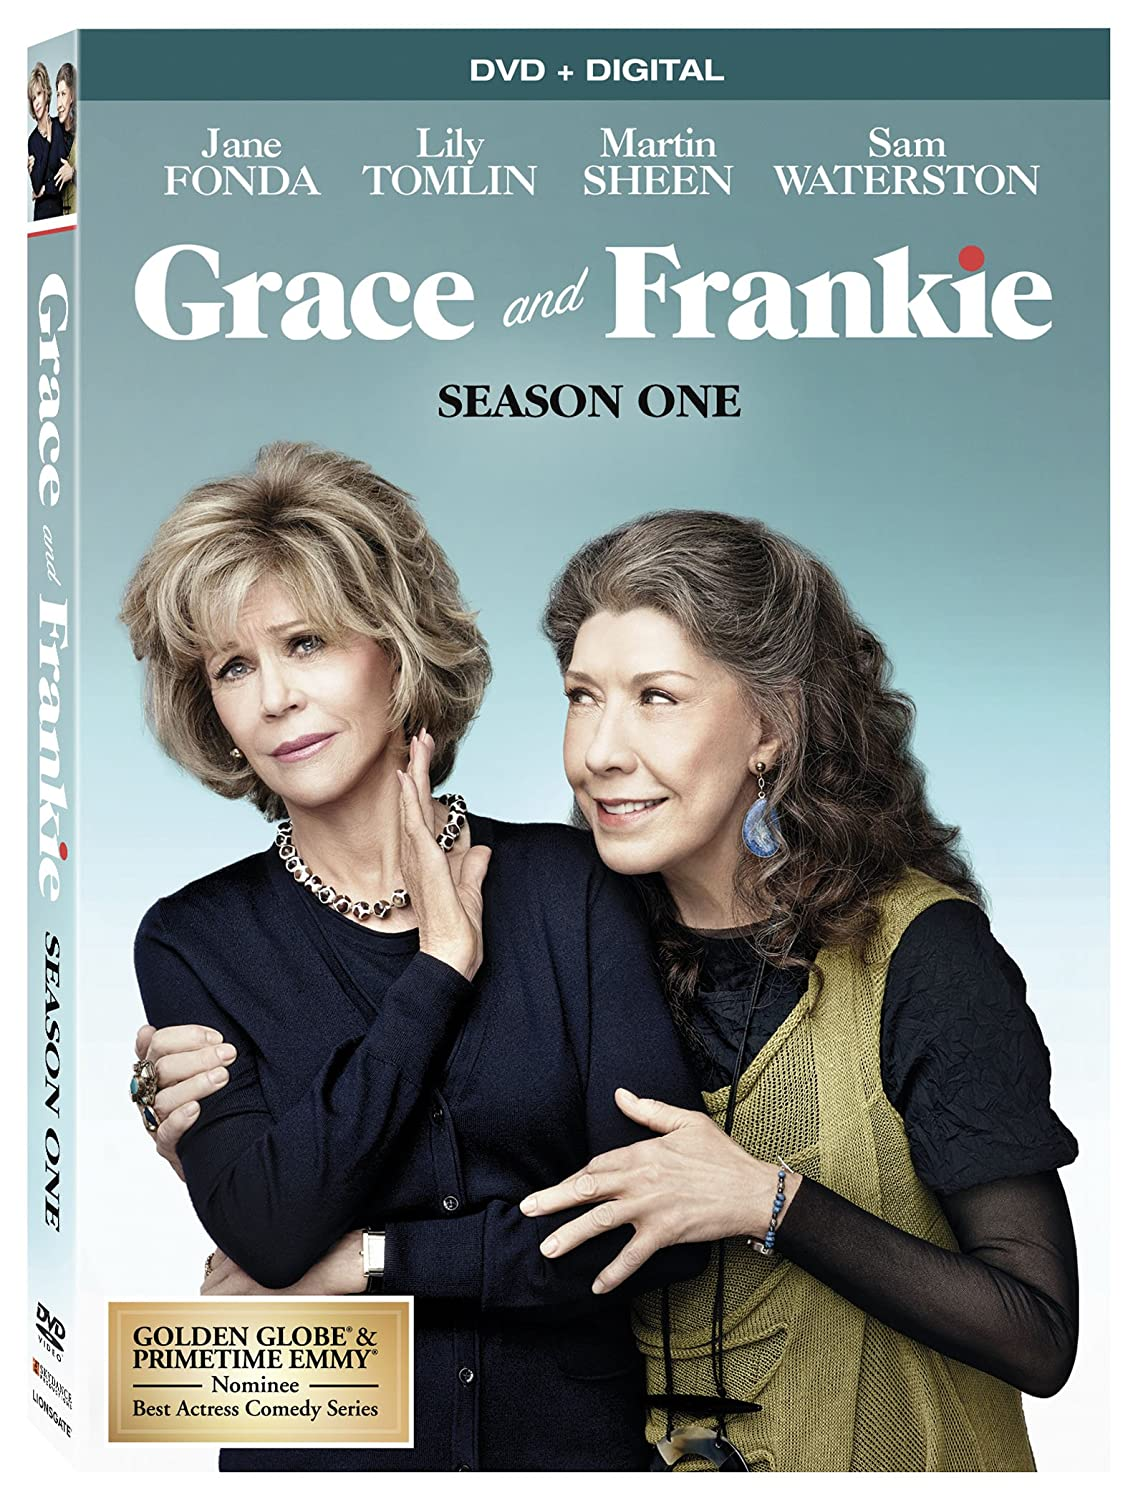 Amazon com: Grace And Frankie Season 1: Jane Fonda, Lily